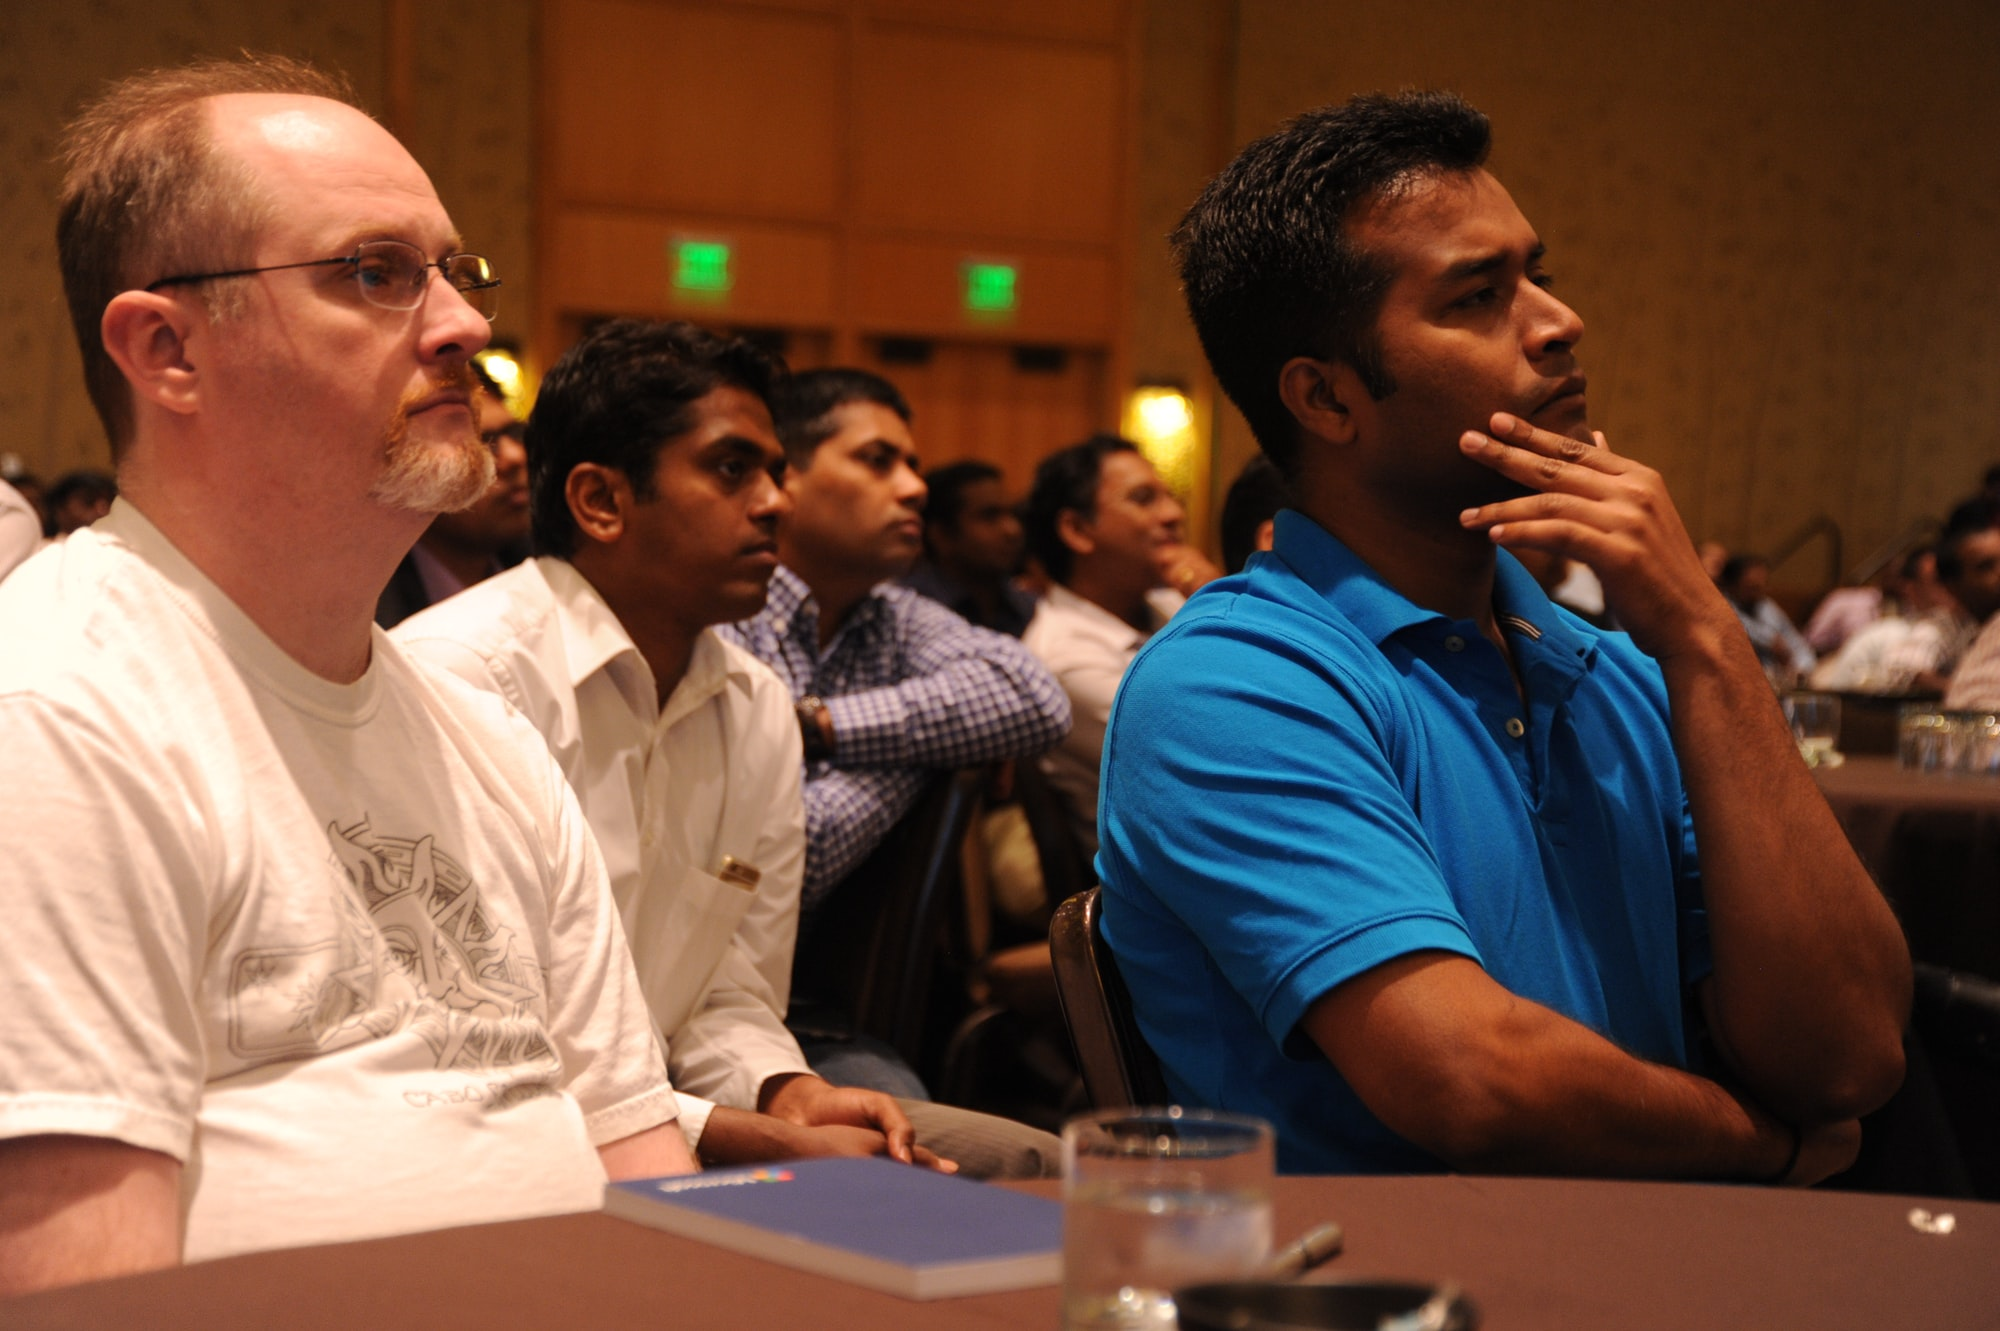 """Developers, database administrators, technologists, many in the US on H1-B Visas to work, mostly men, some US citizens, some Canadians, during a Town Hall company meeting, """"Design Thinking: because it betters us in our disciplines"""", Bellevue, Washington, USA"""